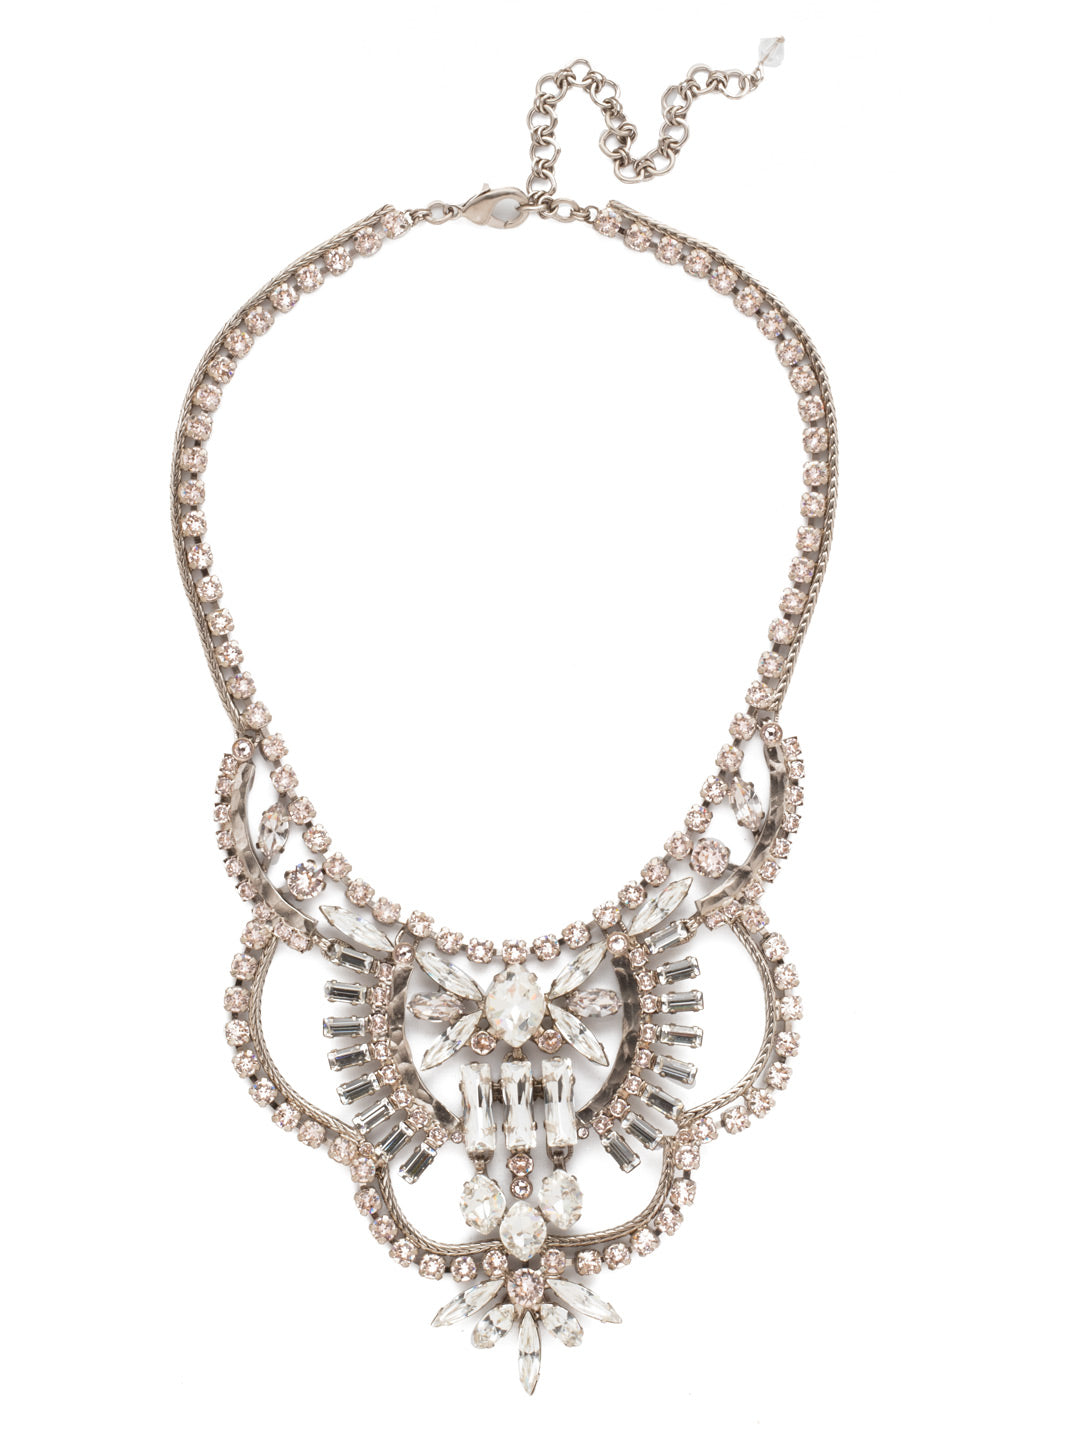 Scalloped Multi-Cut Crystal Statement Necklace - NCY16ASPLS